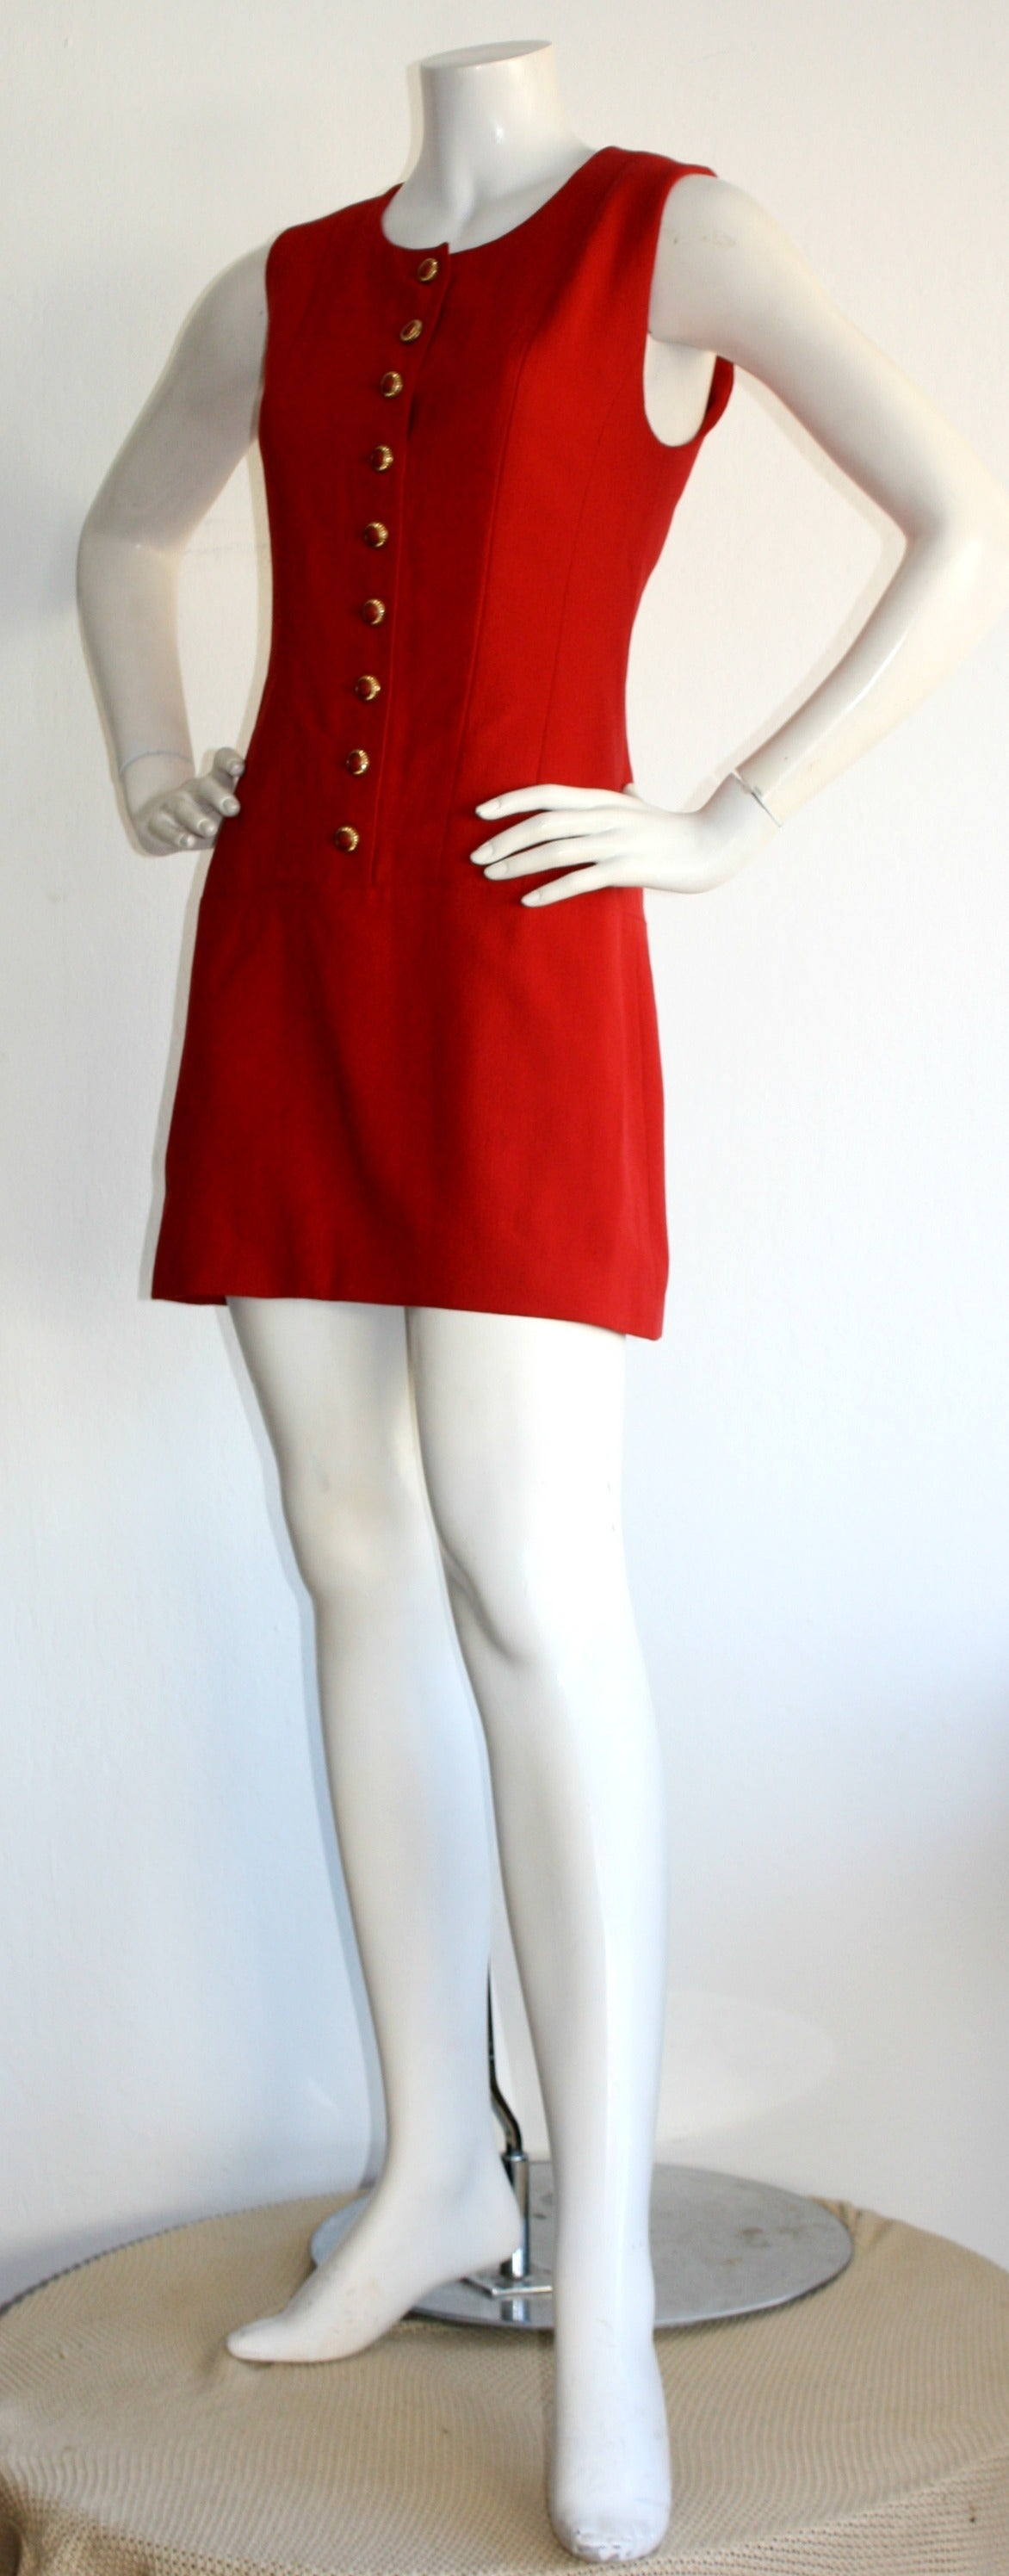 Vintage Karl Lagerfeld 1990s Does 1960s Red Scooter Dress 6